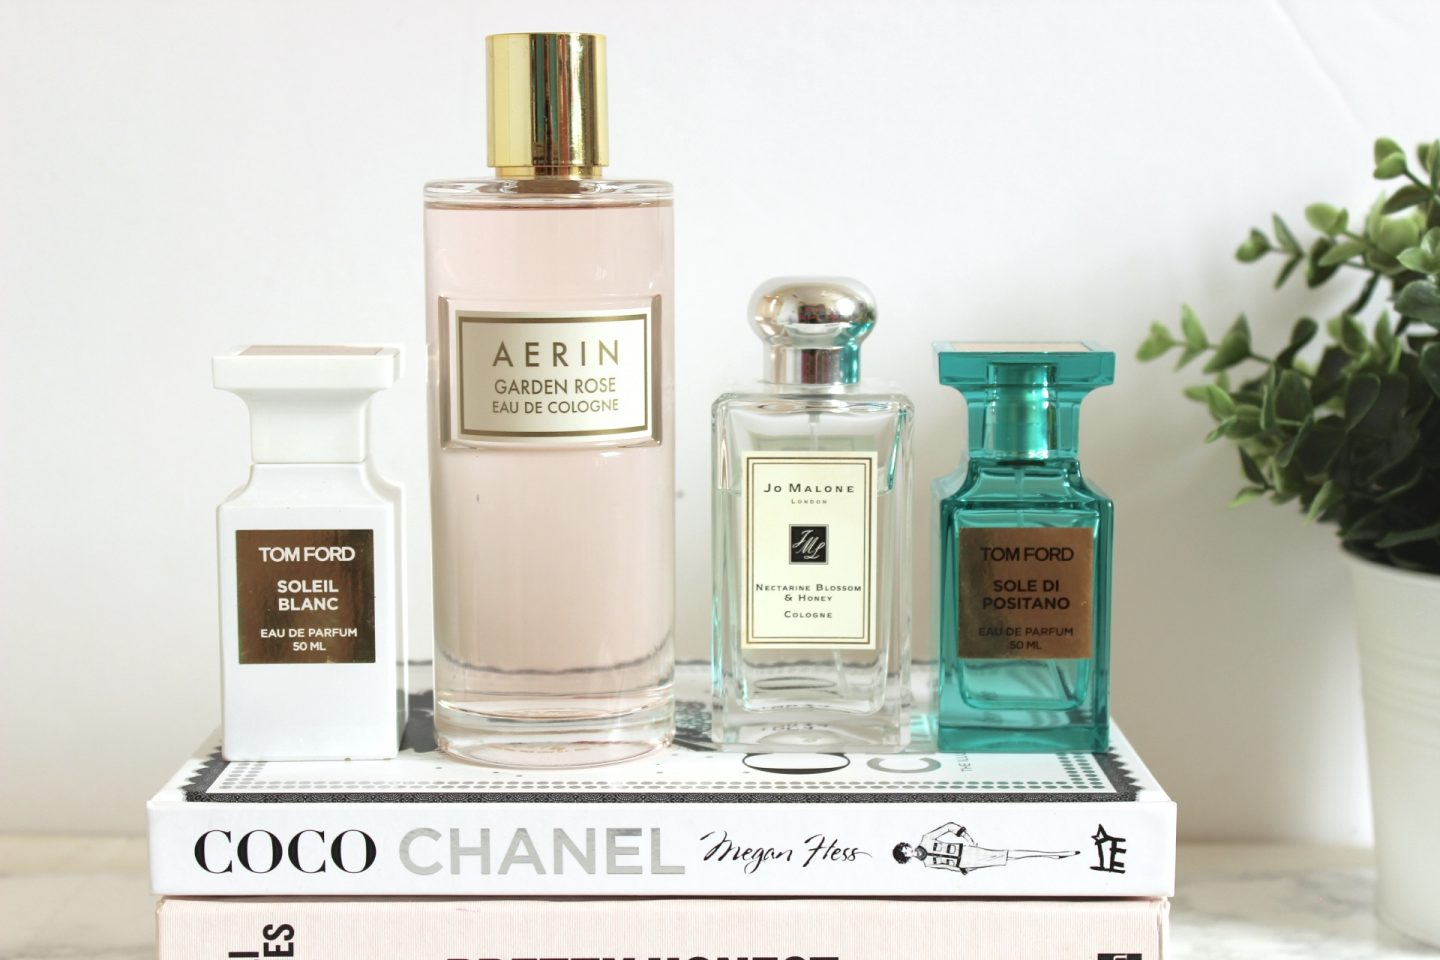 Summe Scents, Aerin Garden Rose, Tom Ford, Soleil Blanc, Tom Ford Sole Di Positano, Jo Malone Nectarine Blossom & Honey